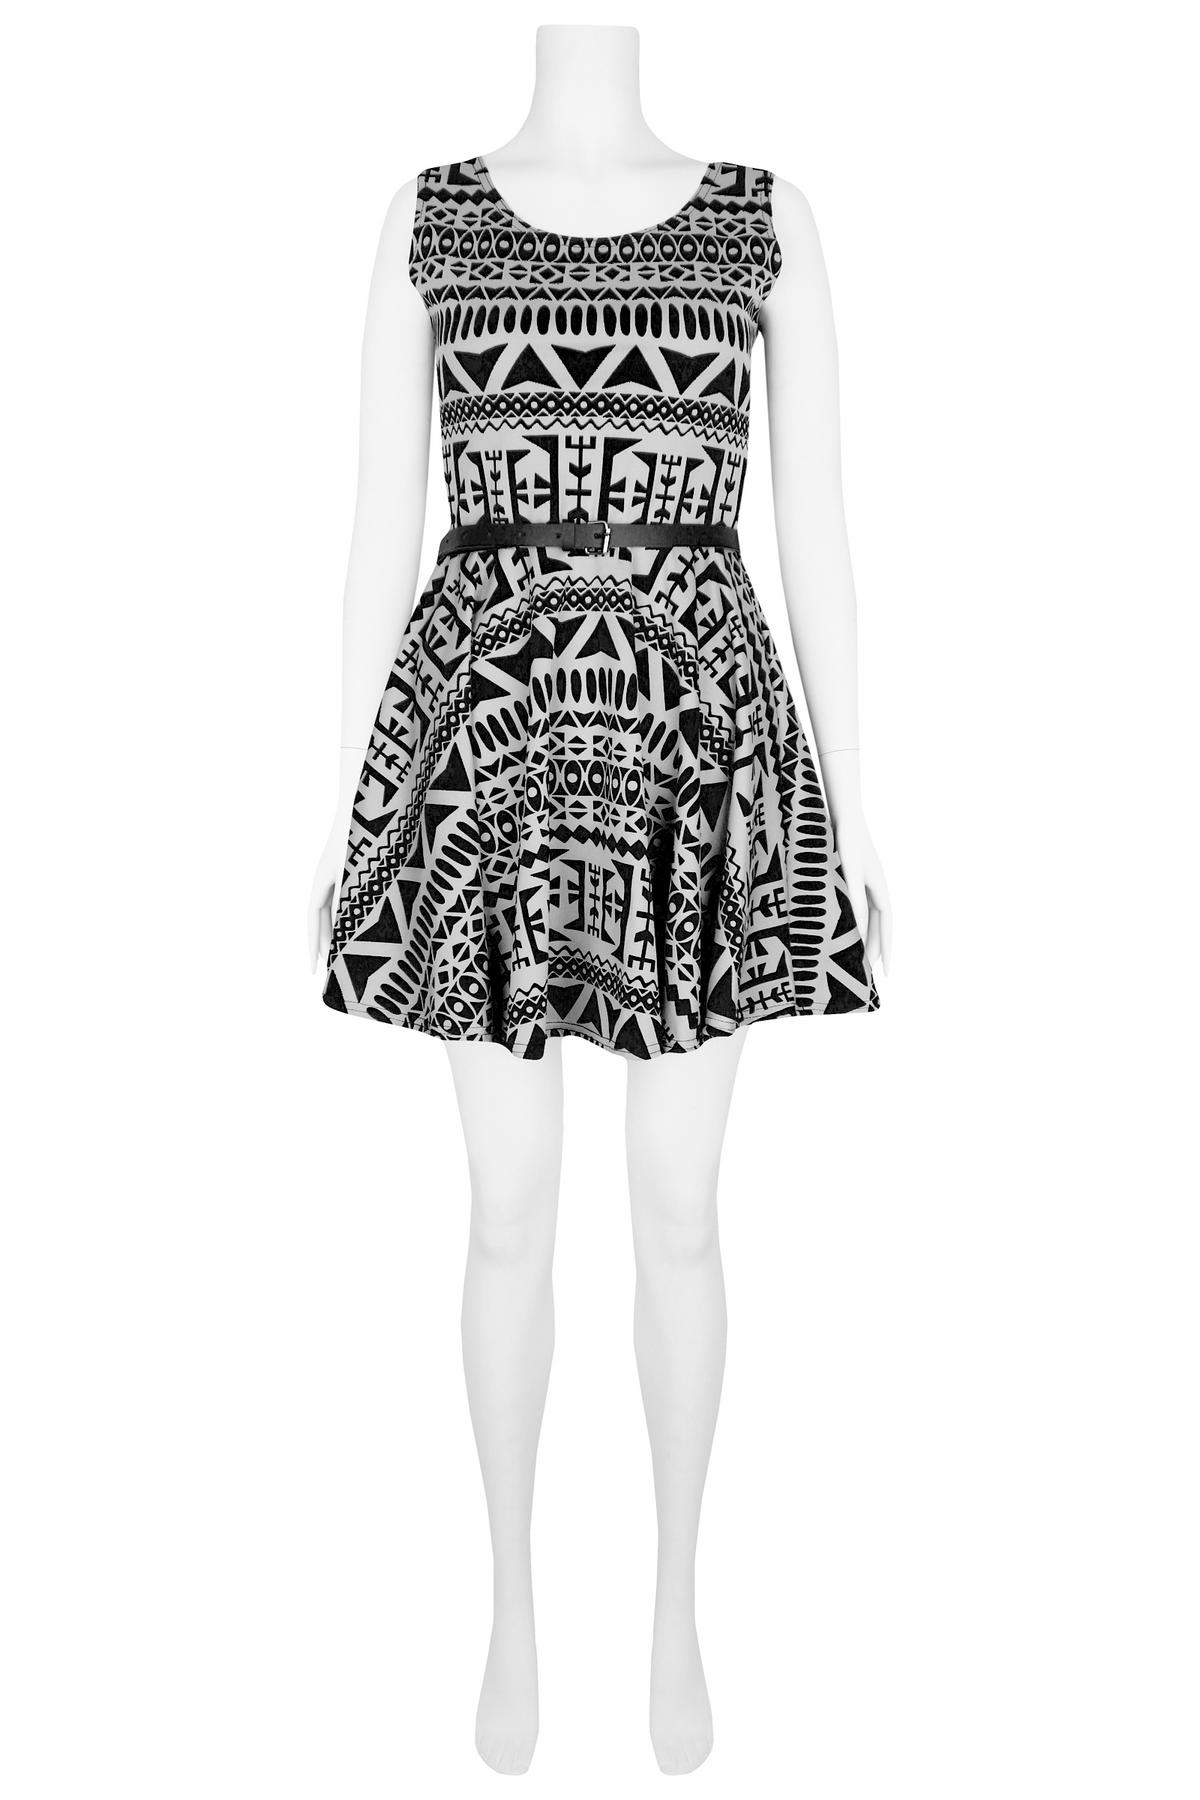 View Item Black & White Aztec Dress